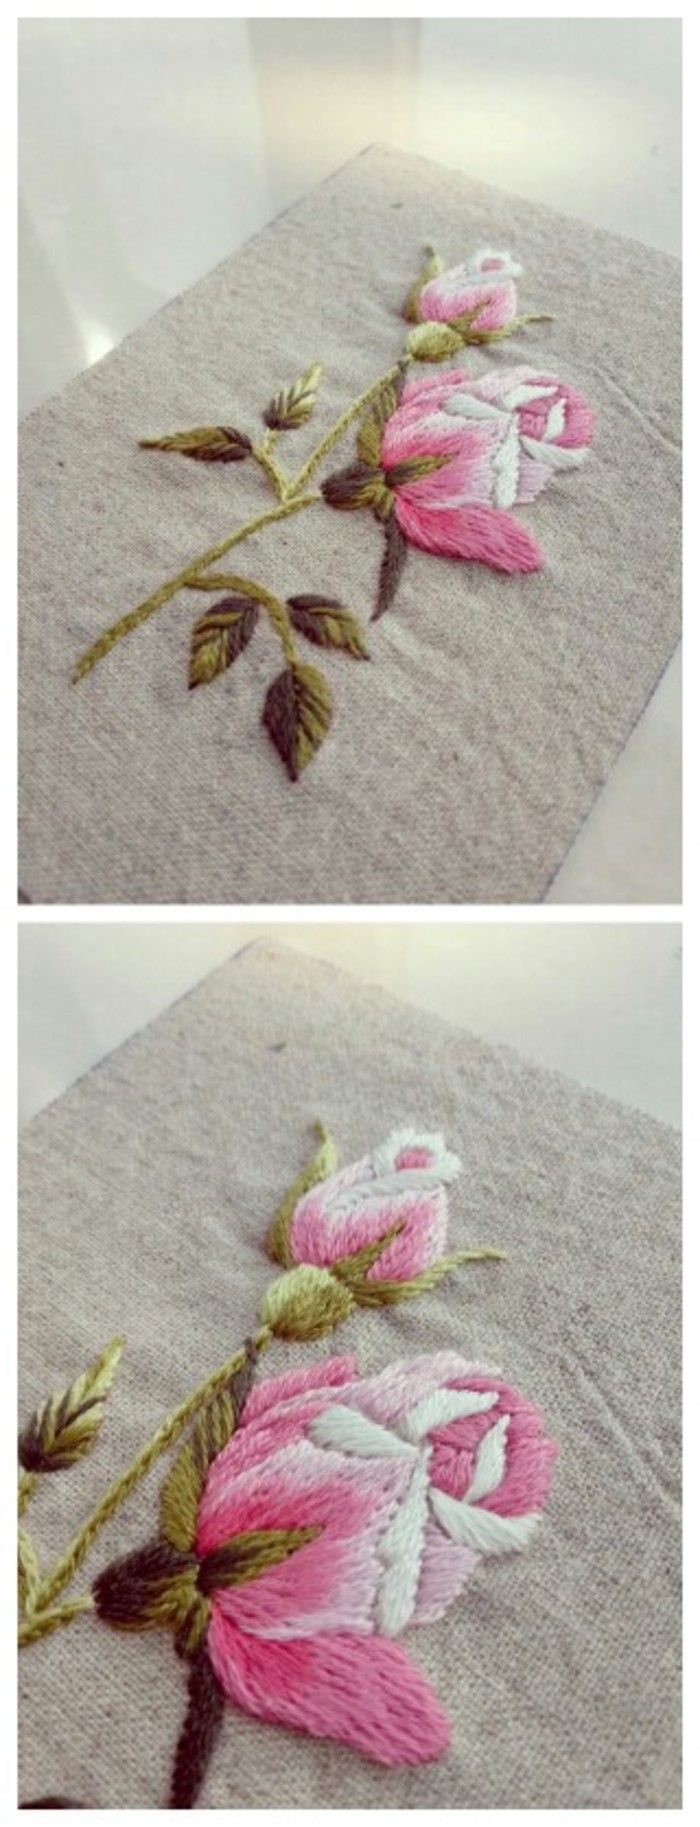 Embroidery How To Embroider: 11 Steps (with Pictures)